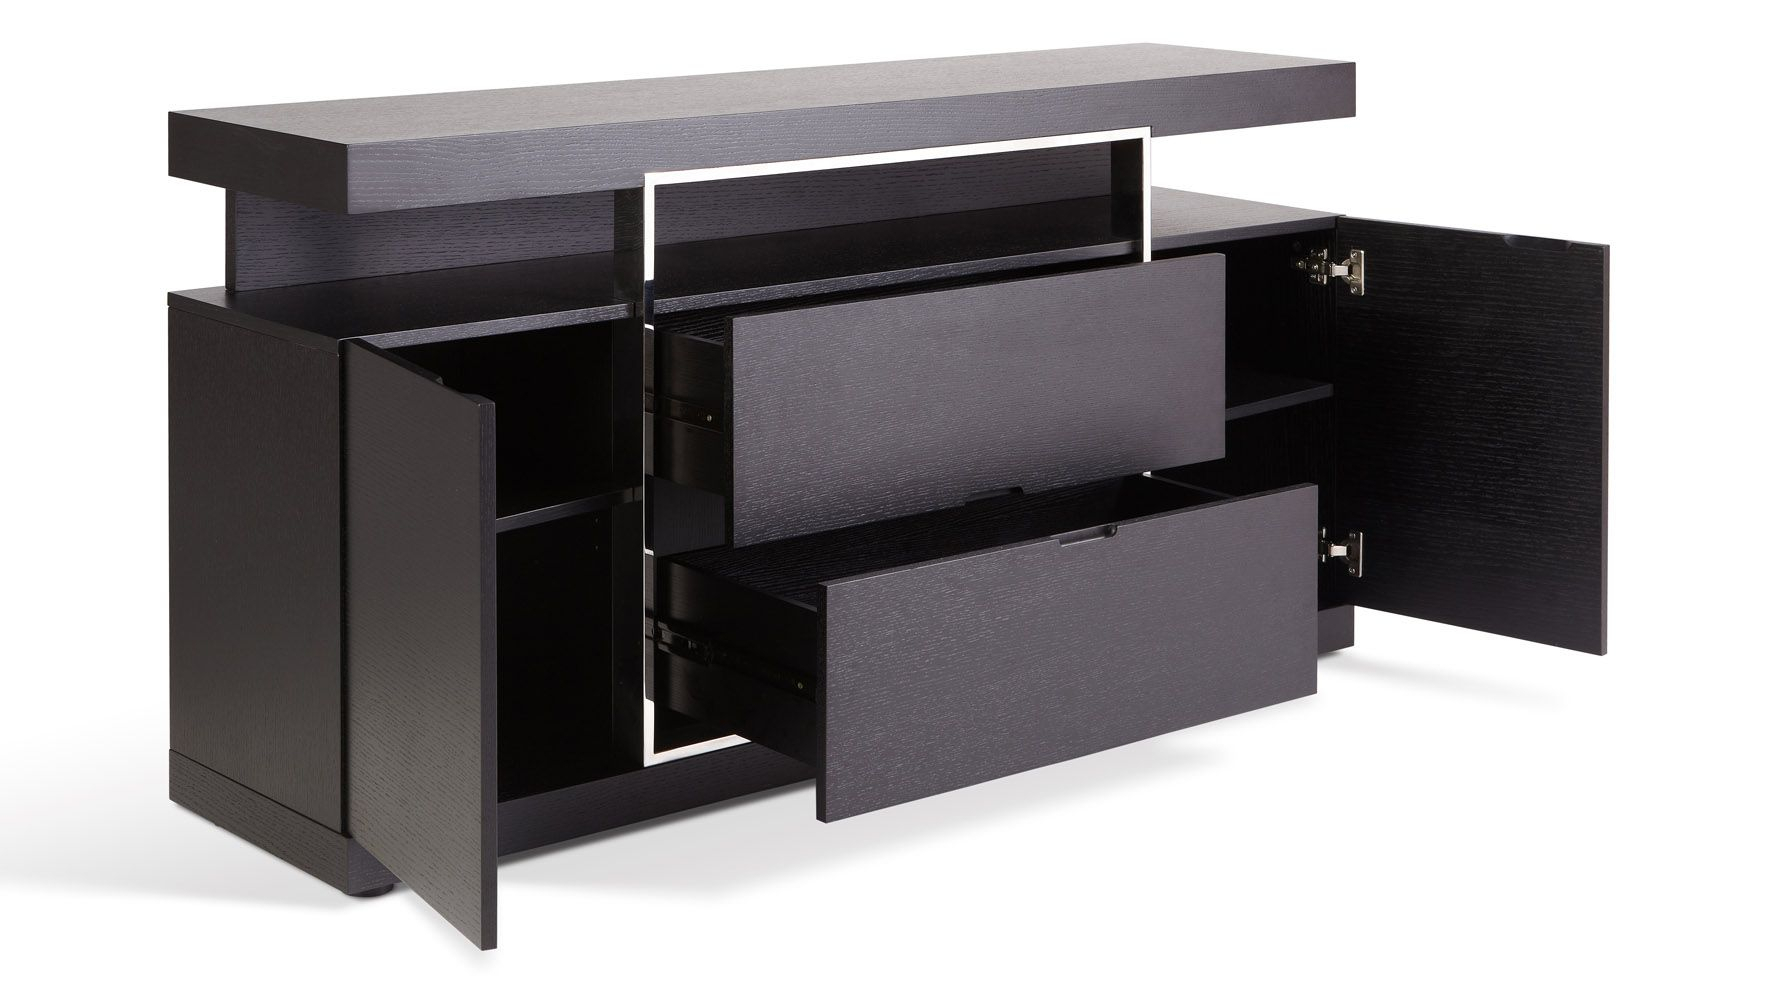 Norah Buffet | Tables | Furniture, Buffet, Office Furniture with regard to Modern Espresso Storage Buffets (Image 27 of 30)